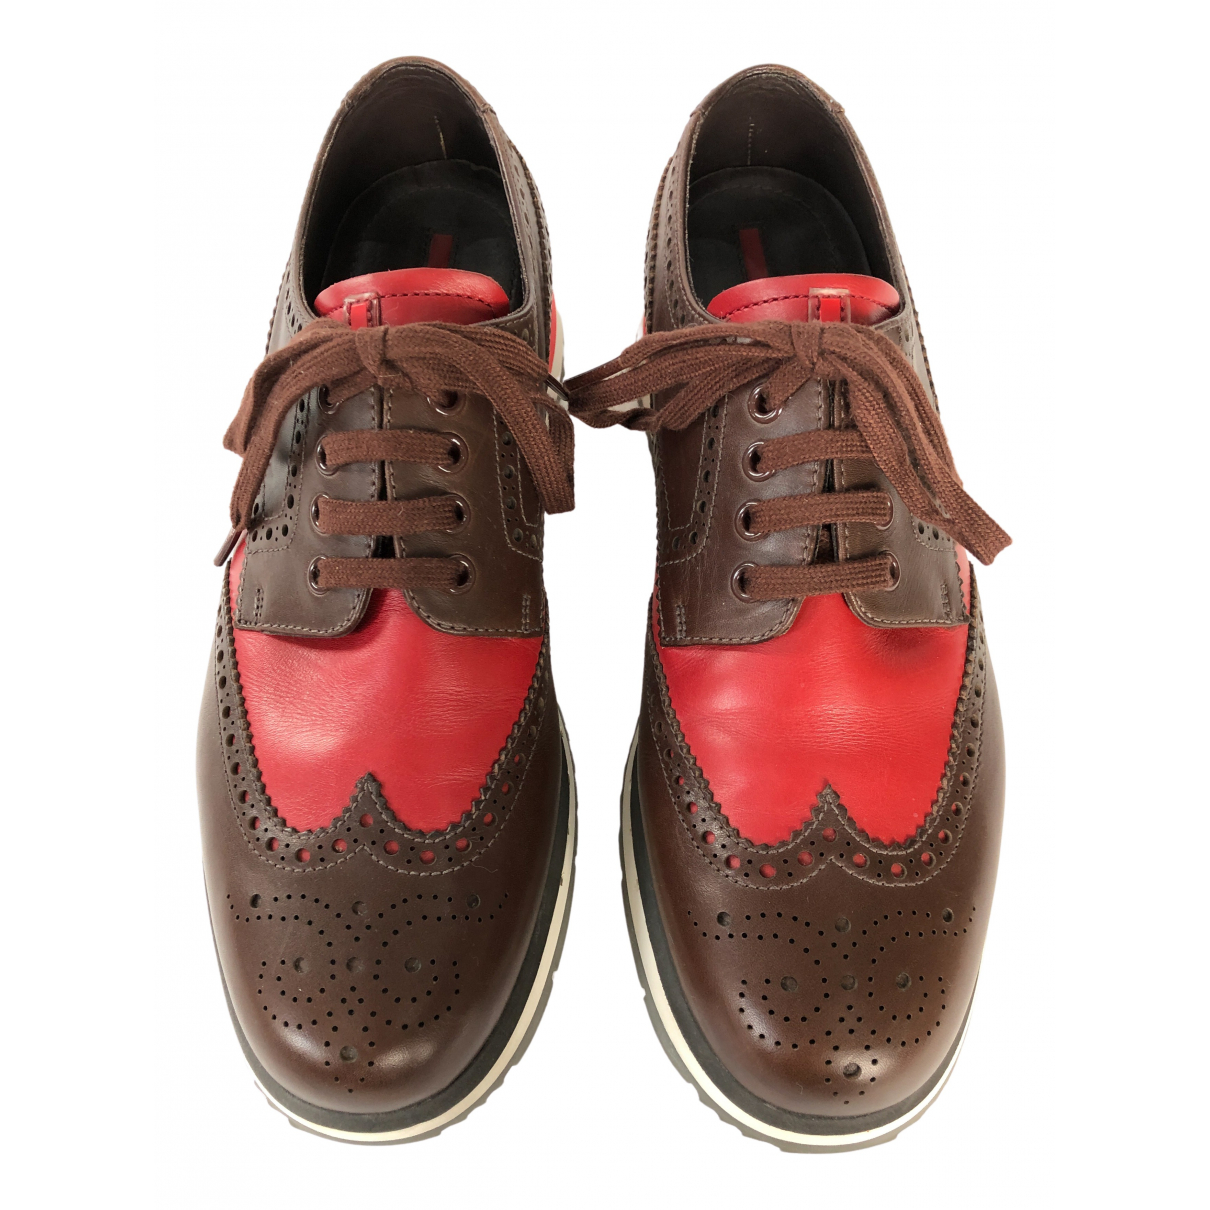 Prada N Brown Leather Lace ups for Men 8 UK